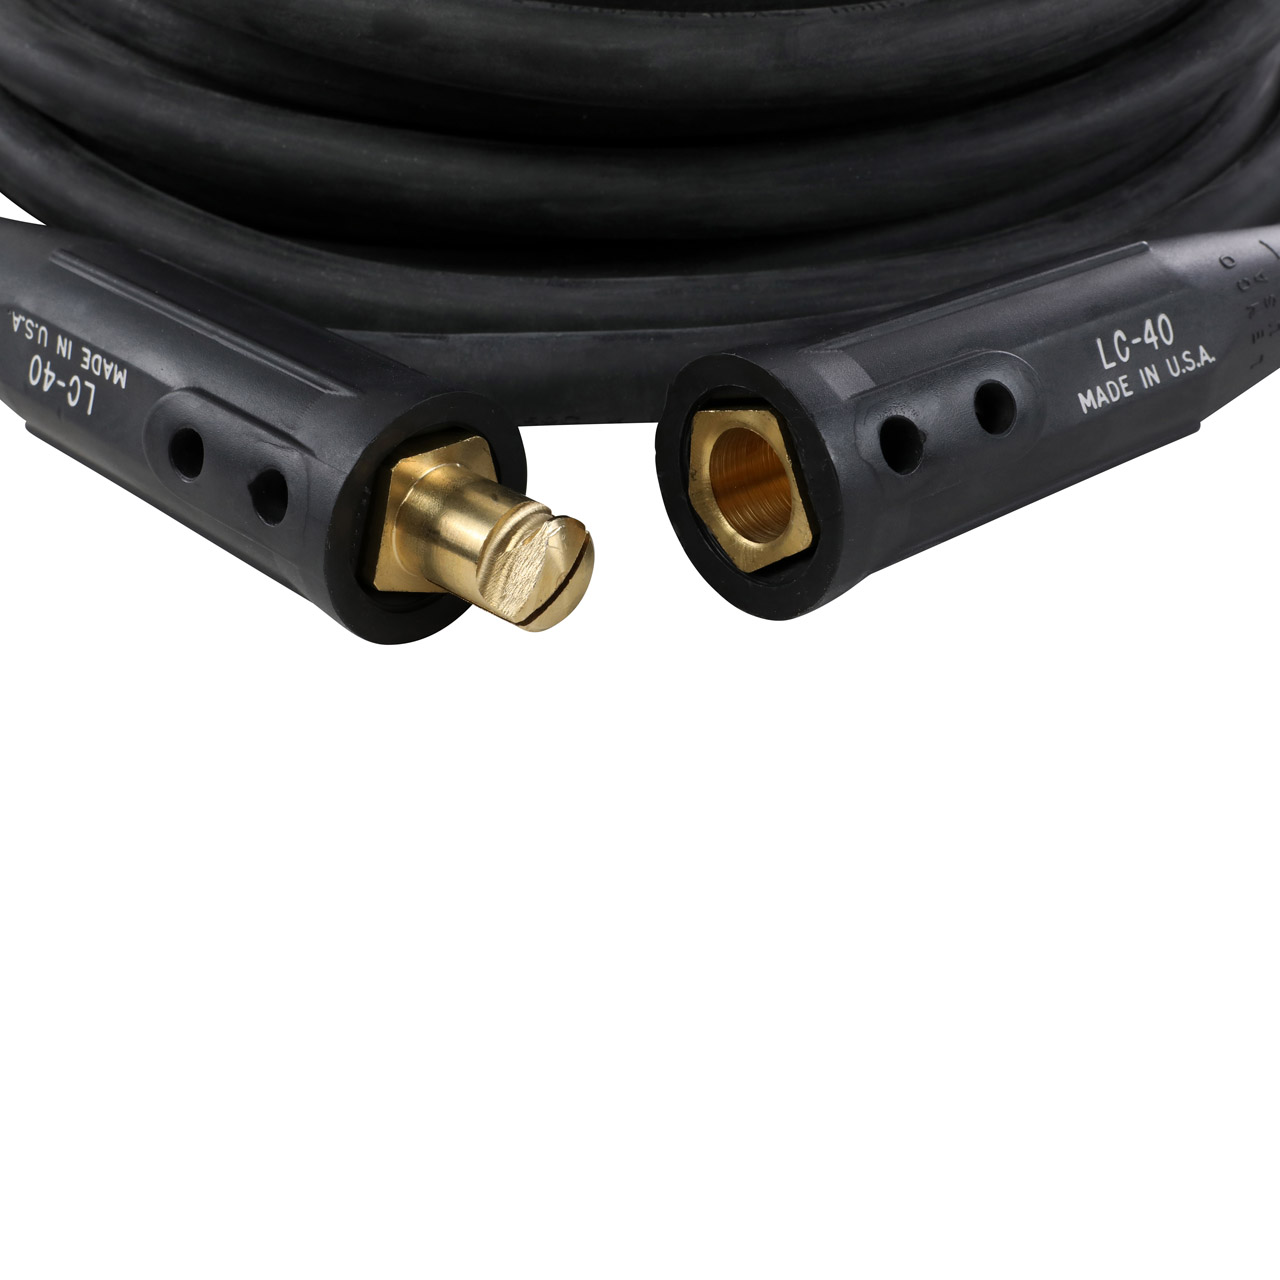 Welding Lead Extension - 2/0 Cable